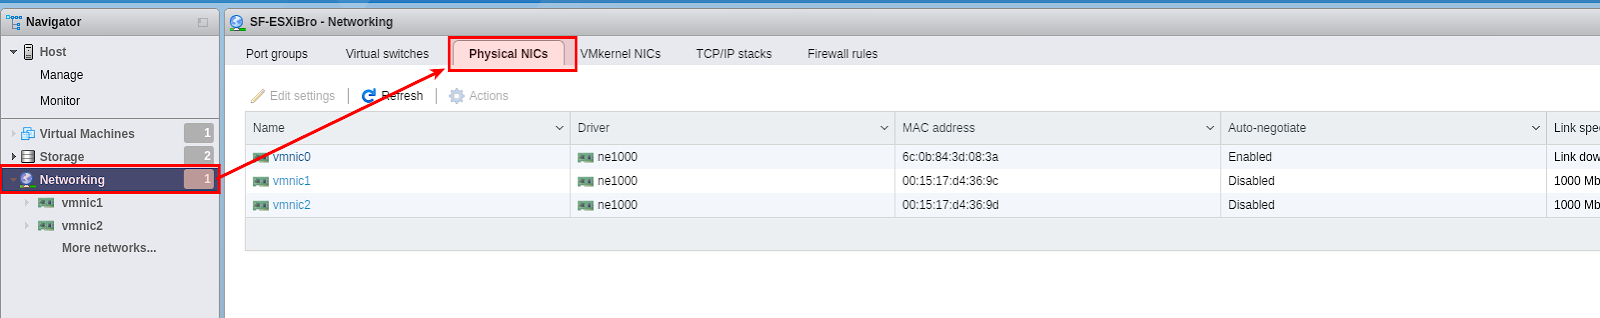 How to Monitor Network Traffic with Virtualized Bro 2 51 on Ubuntu